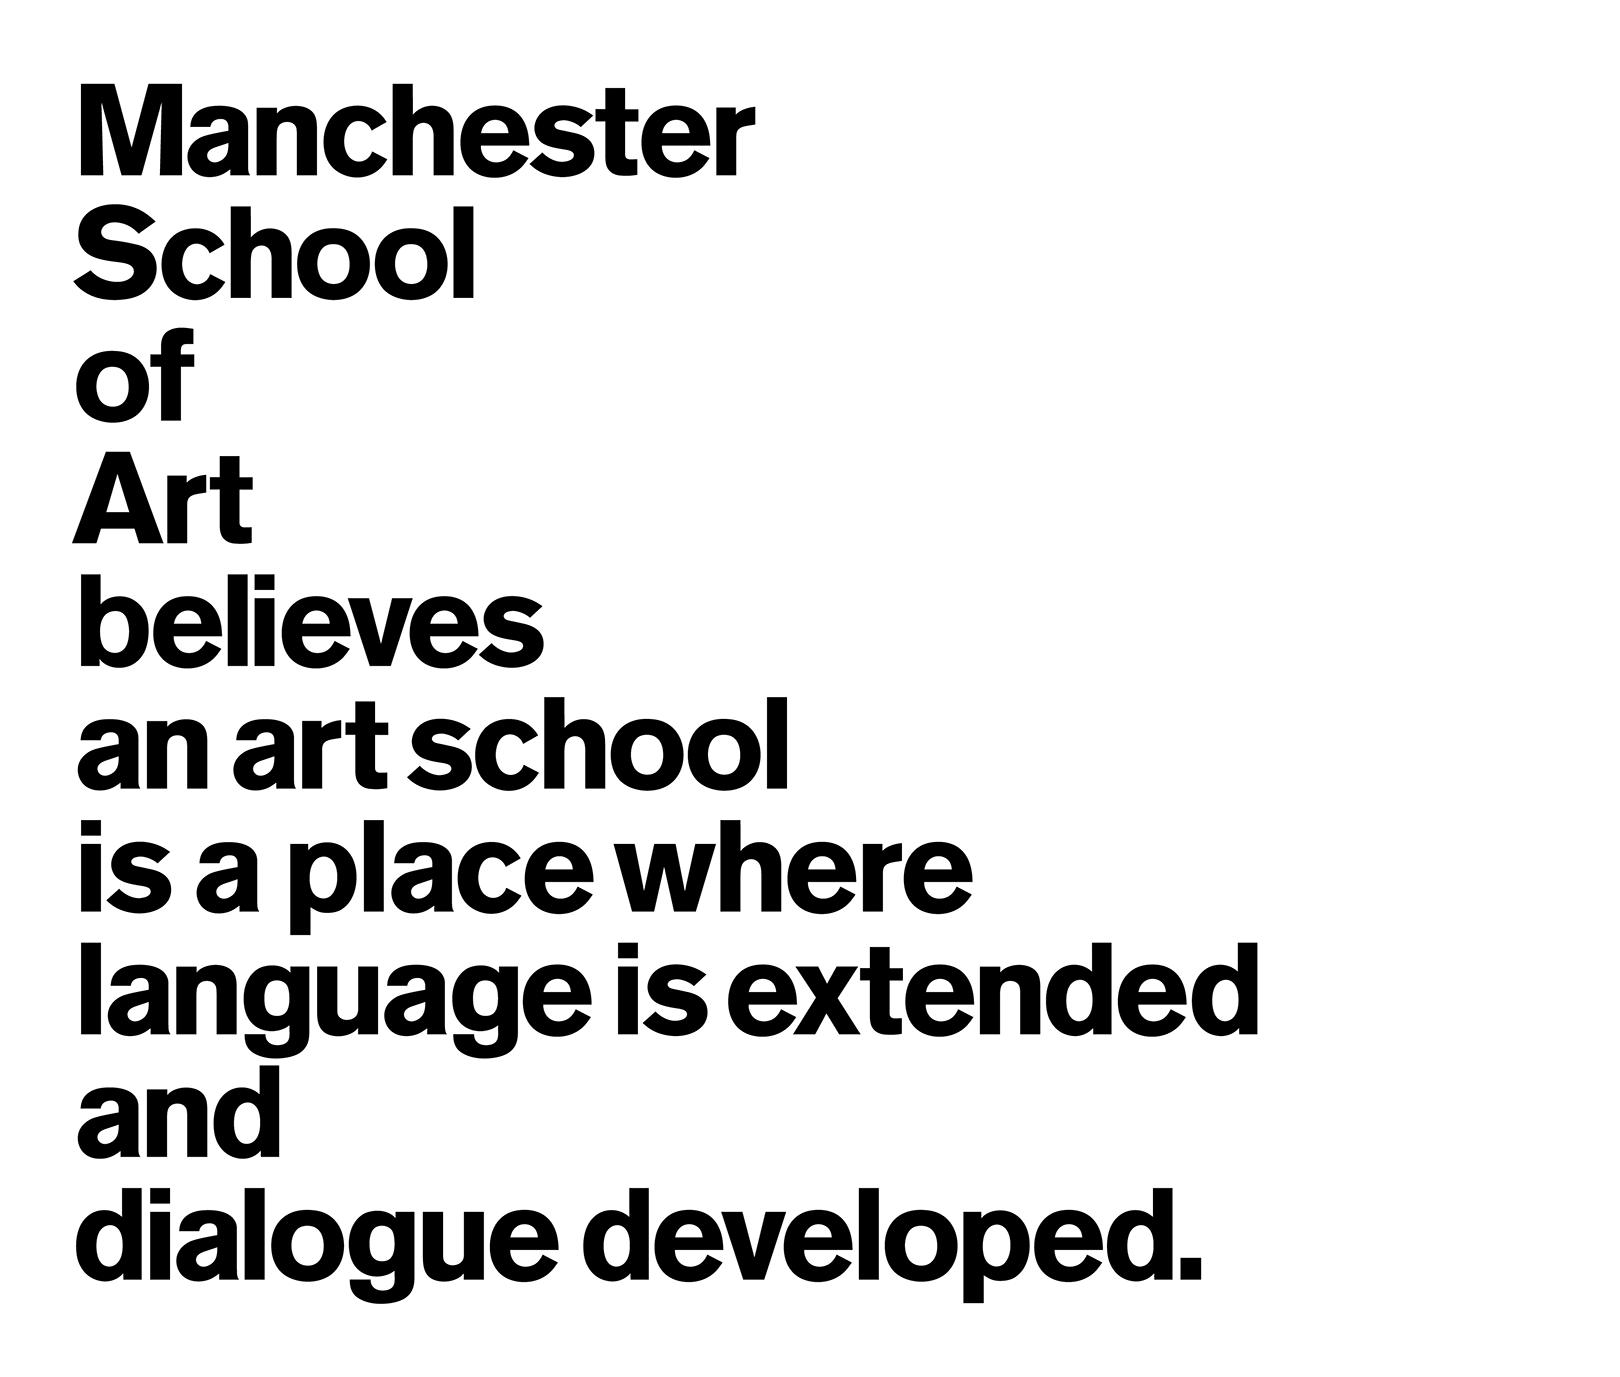 Manchester School of Art believes an art school is a place where language is extended and dialogue developed.